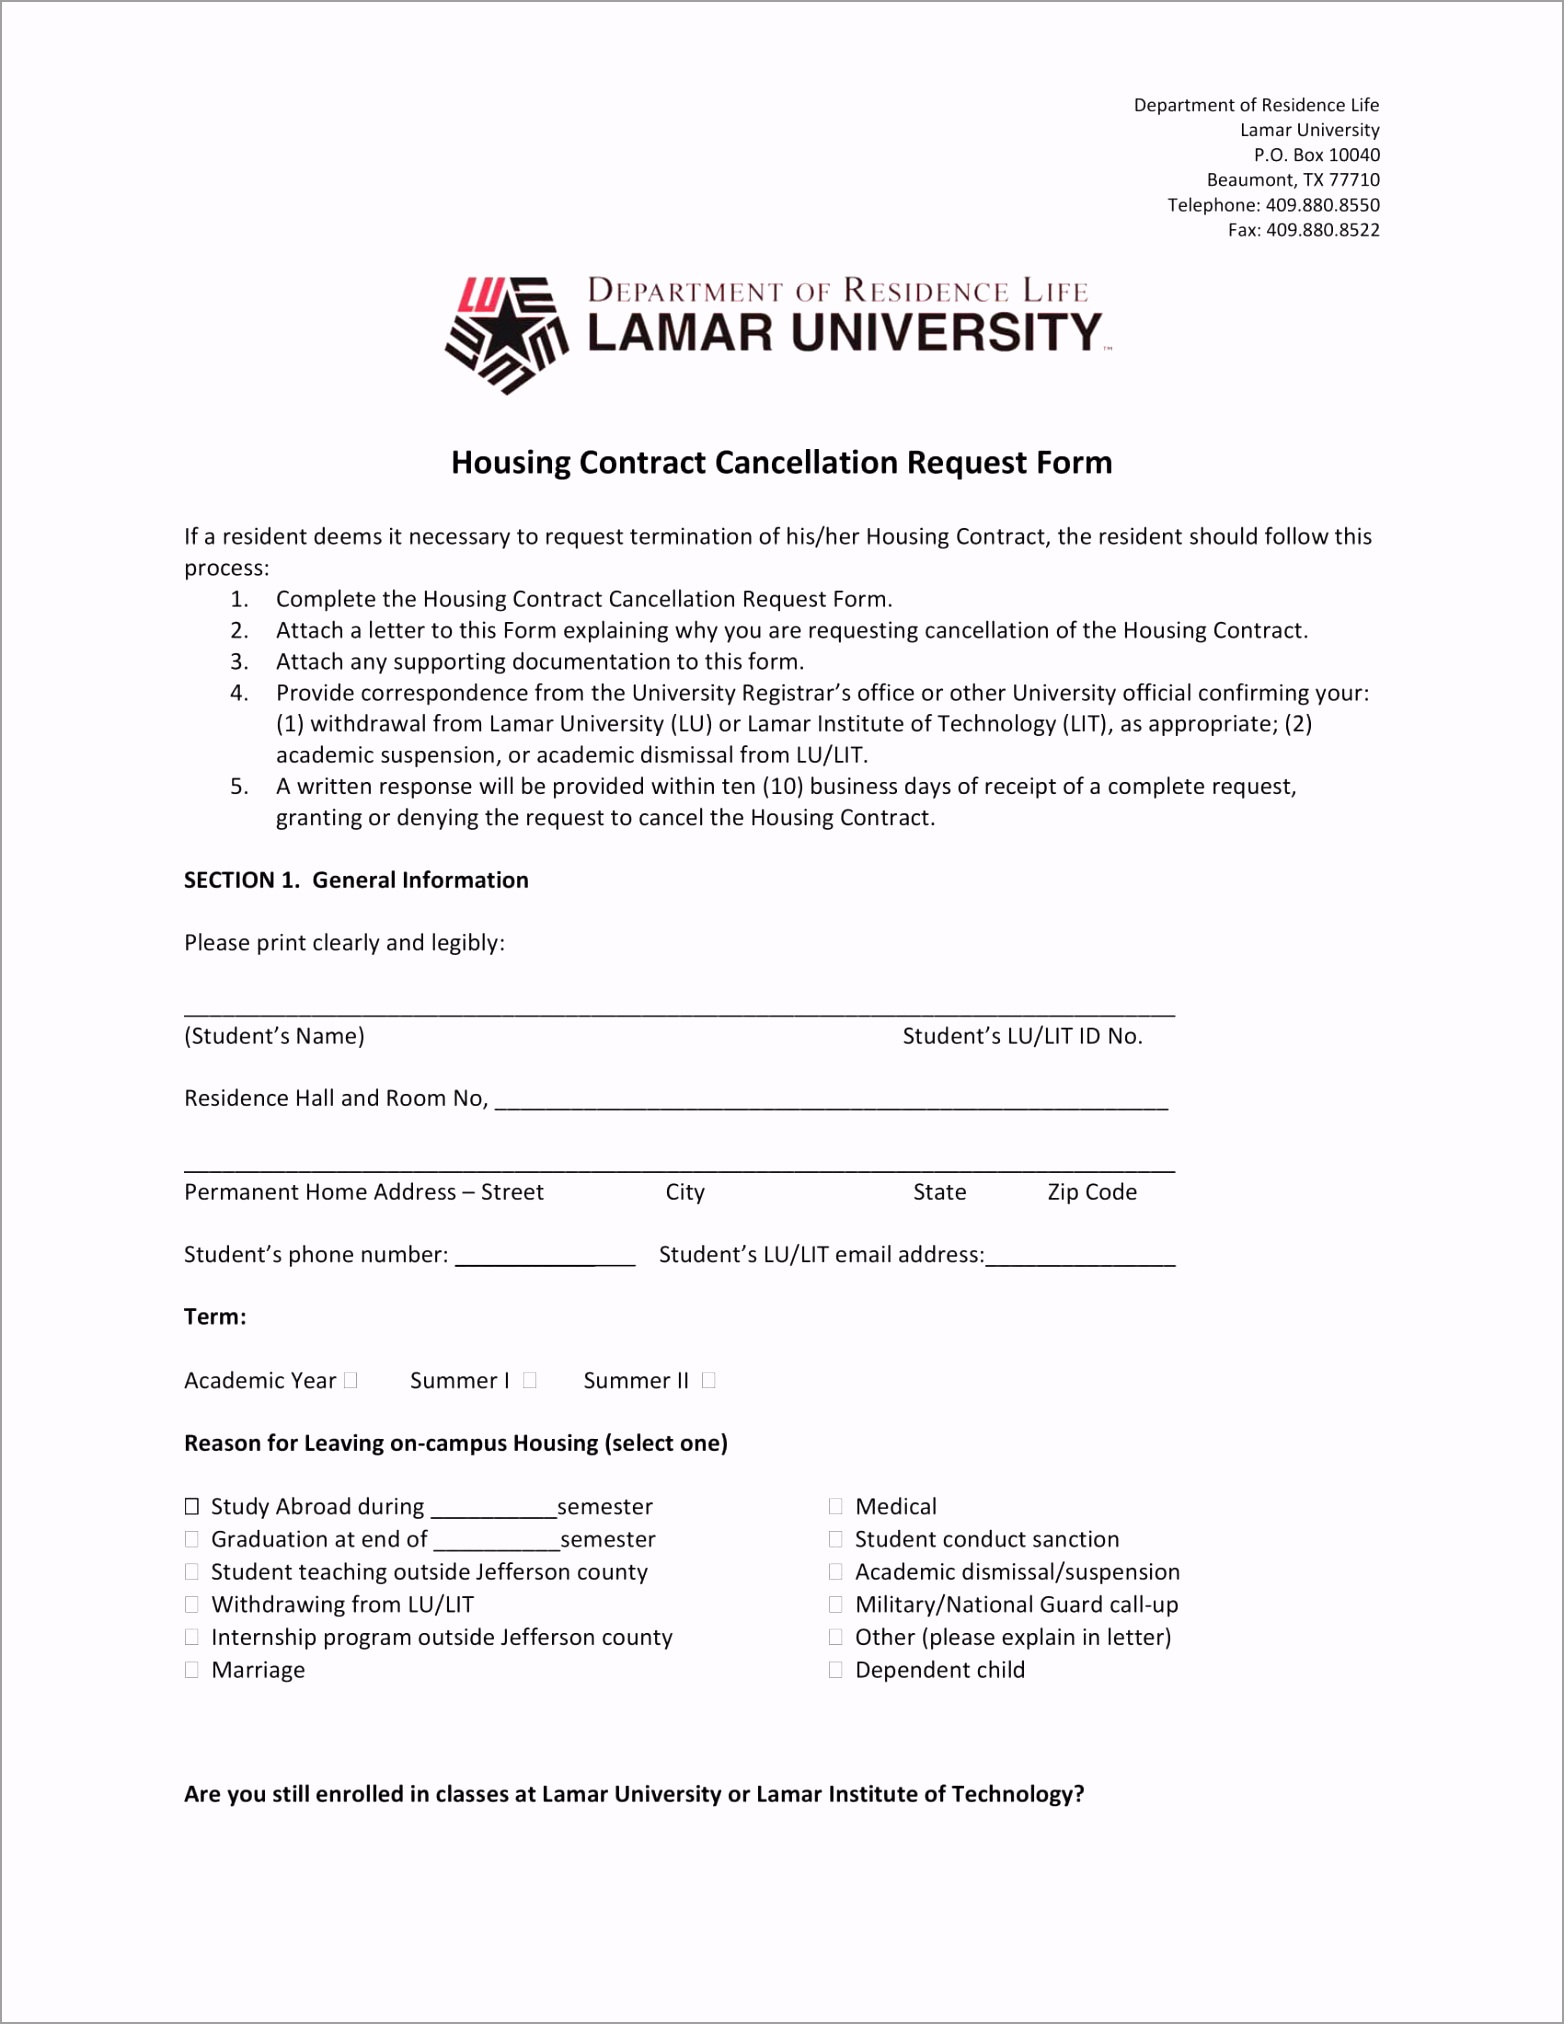 Housing Contract Cancellation Request Form 1 uwiiw